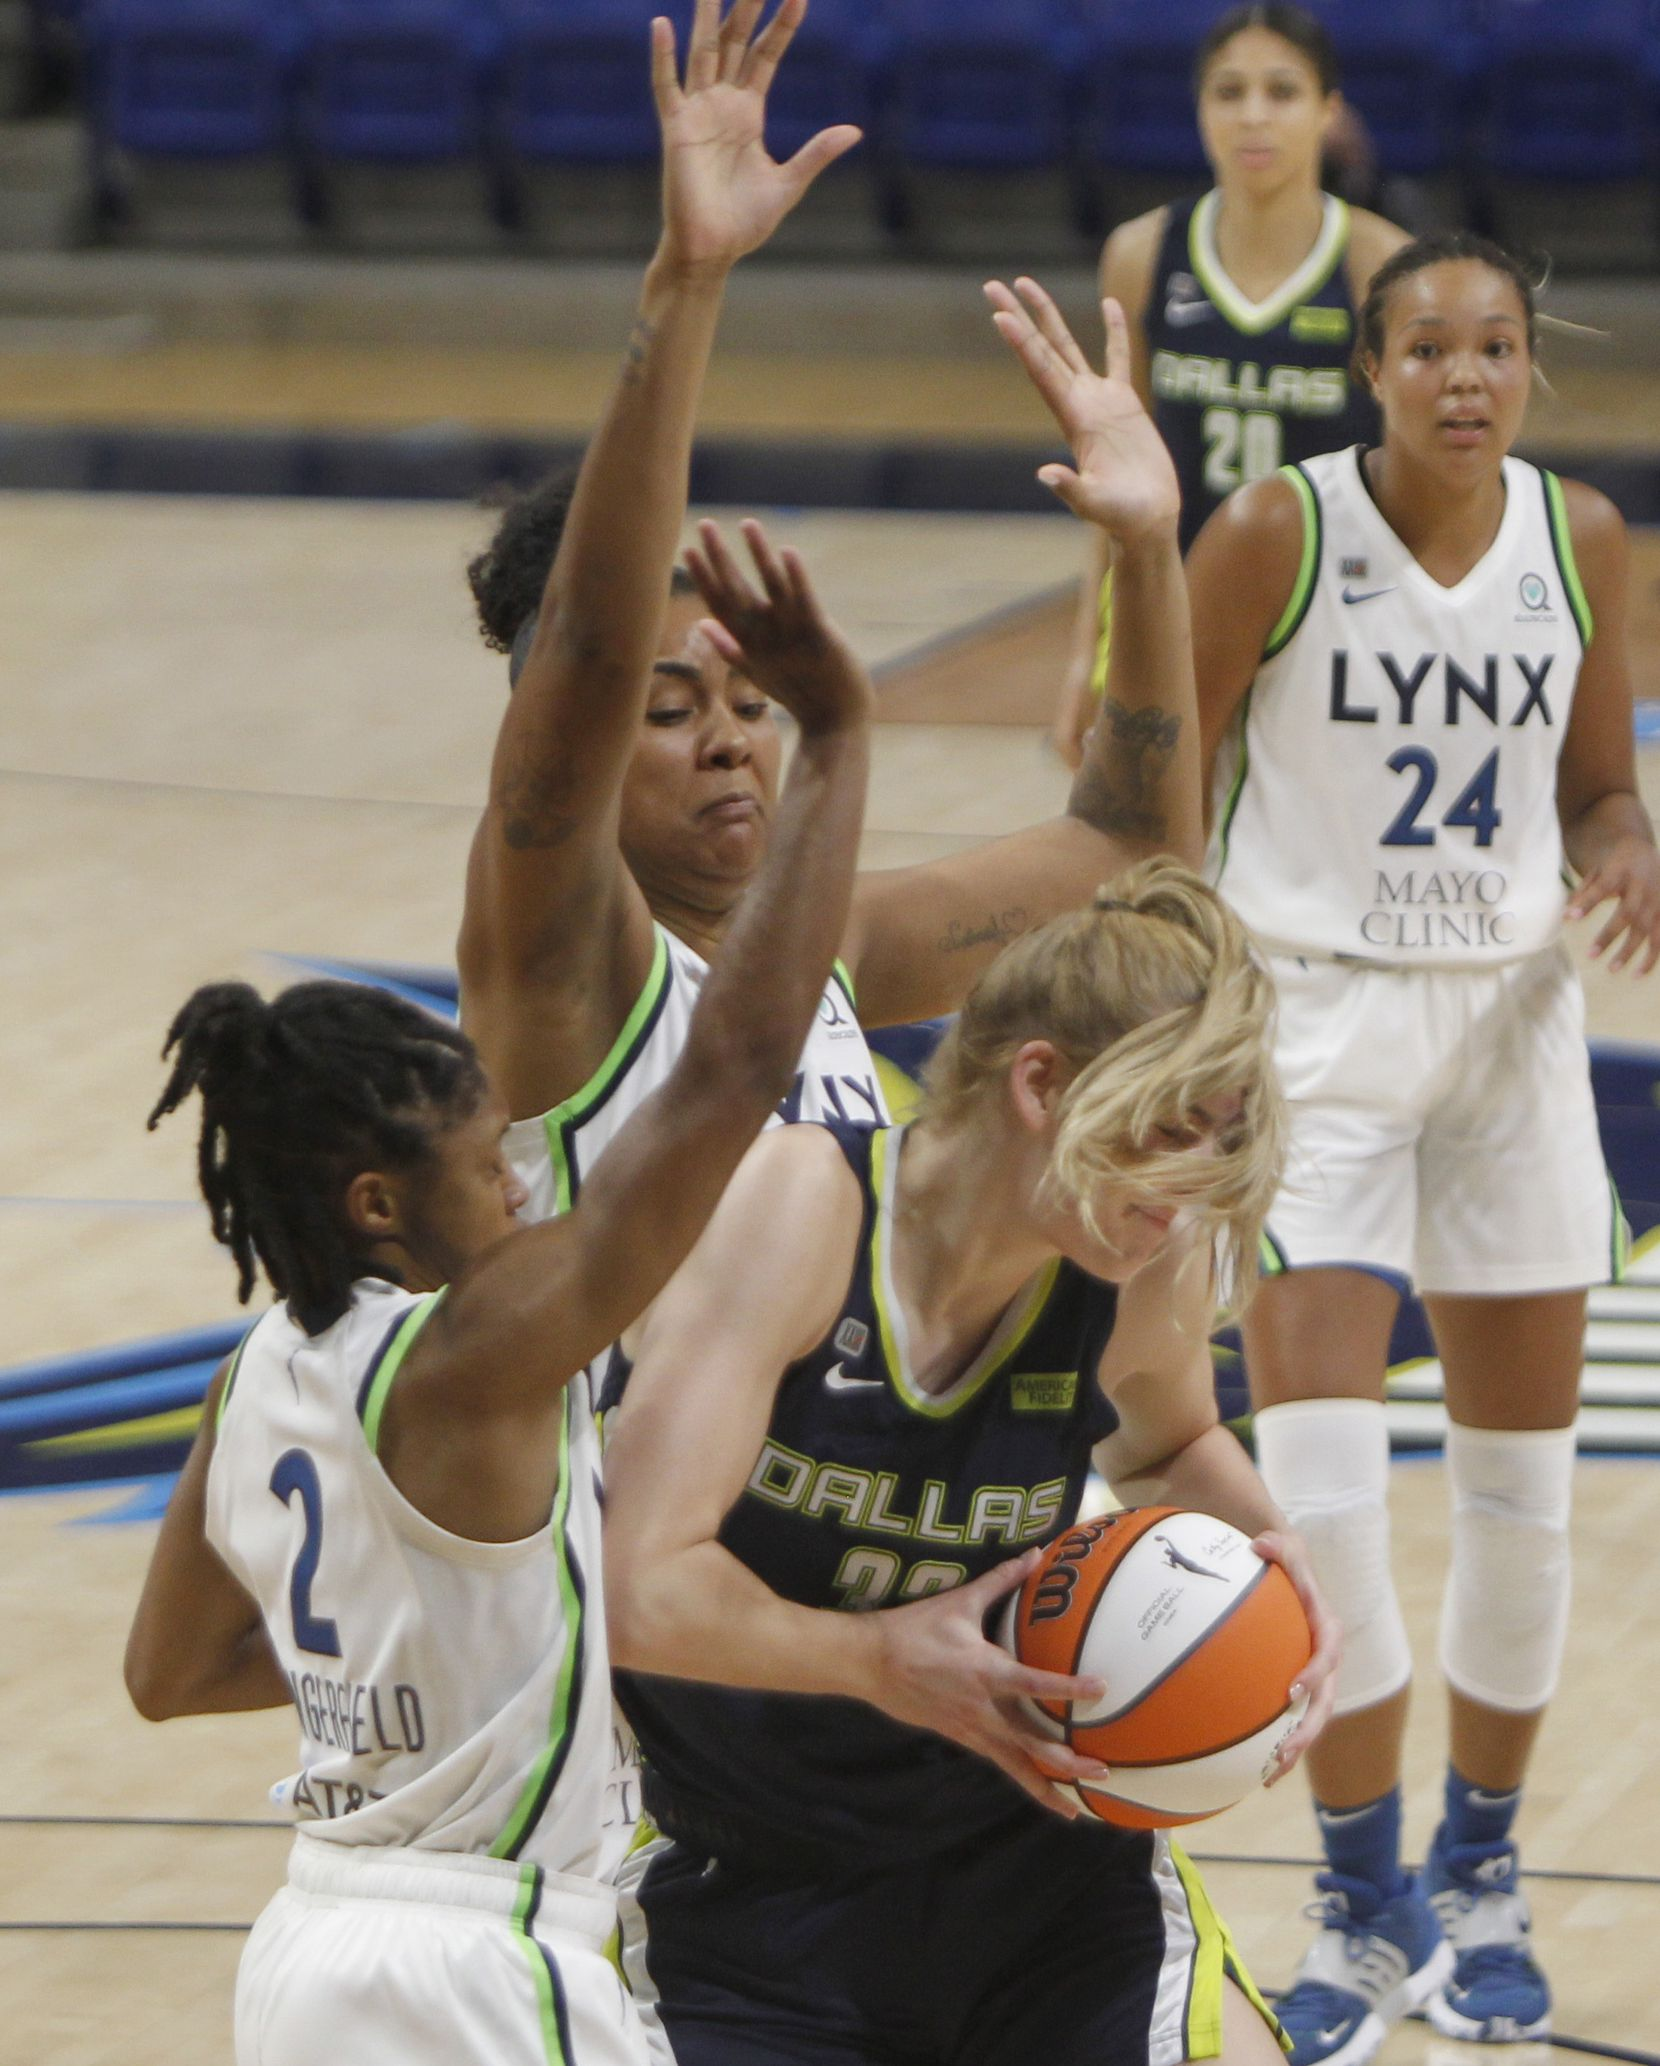 Dallas Wings center Bella Alarie (32) got a face full of her own hair as she drives under the basket against the defense of Minnesota Lynx guard Crystal Dangerfield (2) and Damiris Dantas (12) during 3rd quarter action. The two teams played their WNBA game at College Park Center on the campus of the University of Arlington on June 17, 2021(Steve Hamm/ Special Contributor)